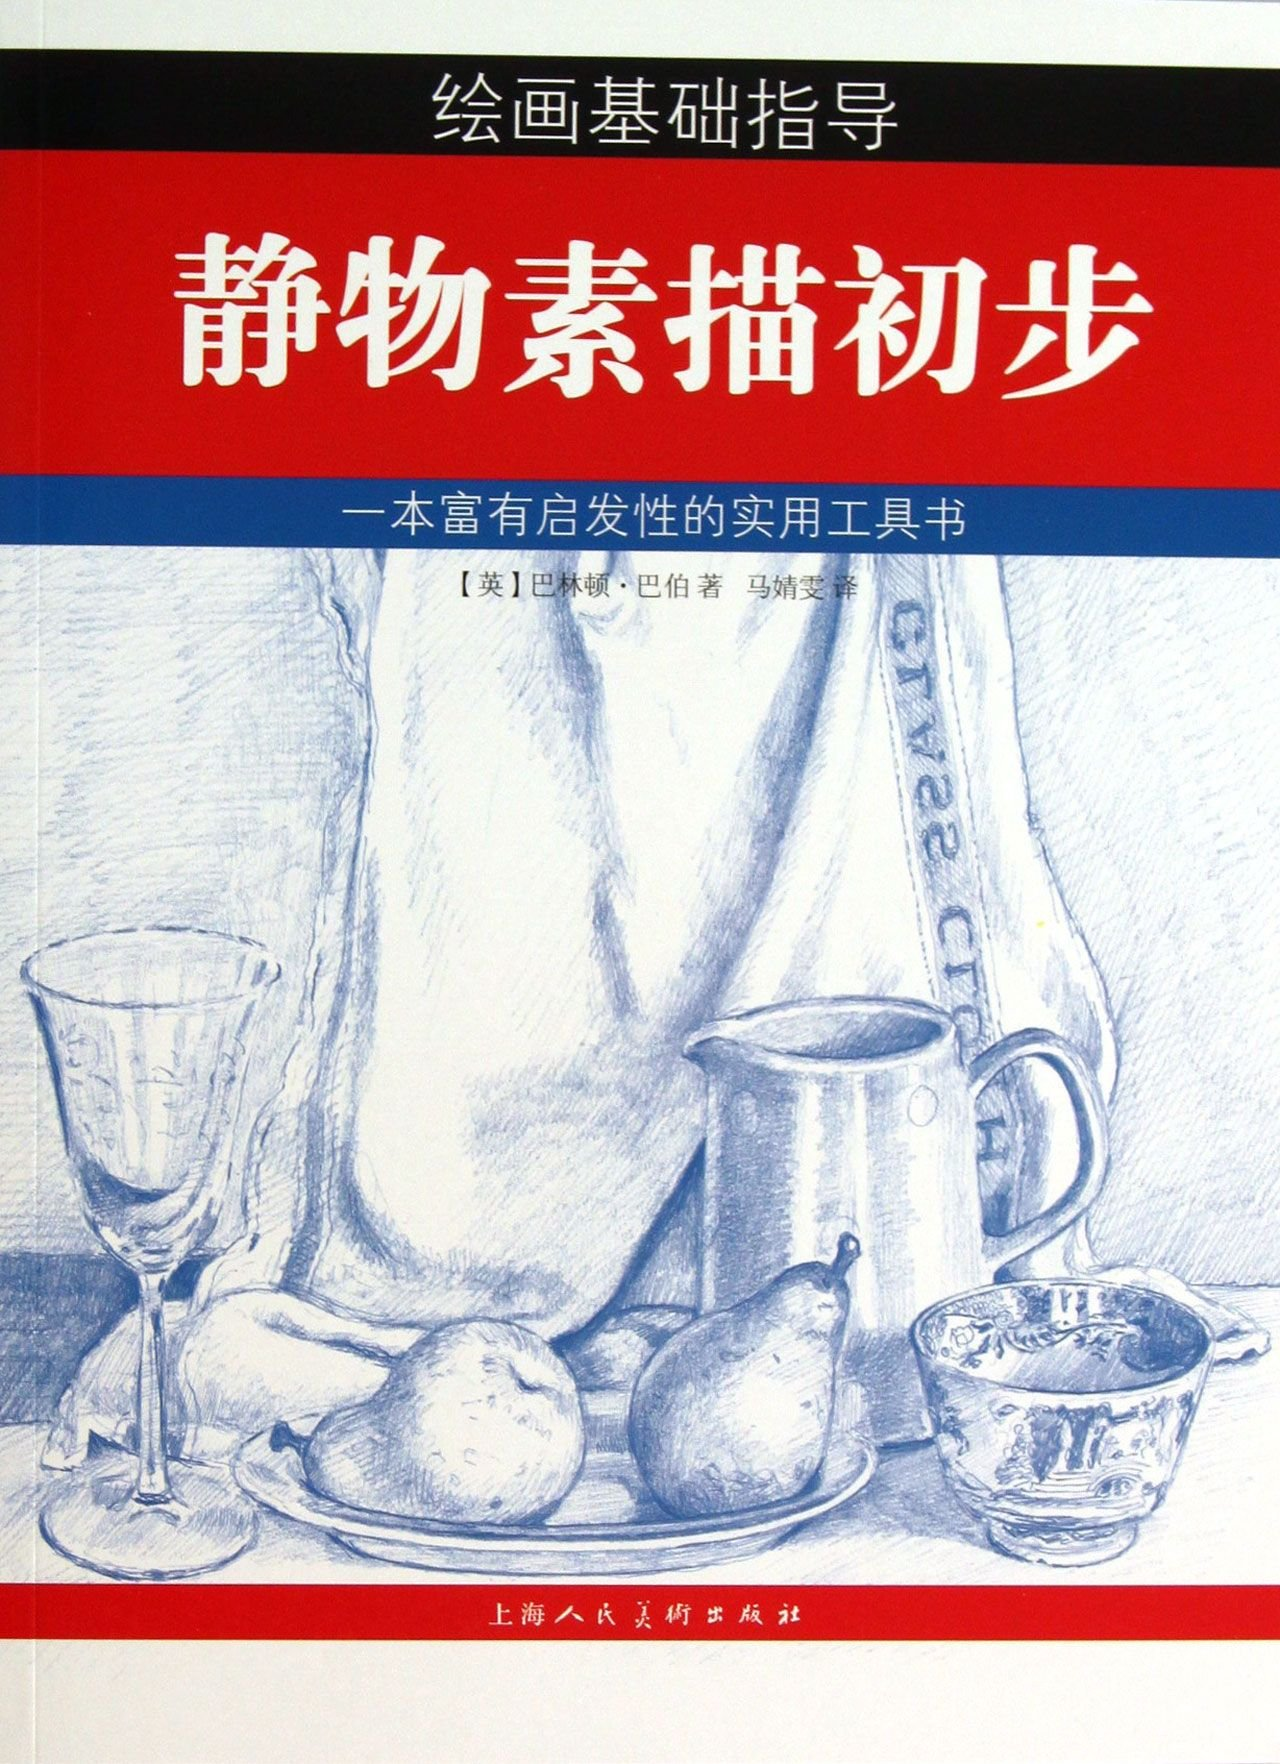 Download Still Life Drawing Initial - Basic Drawing guidance(Chinese Edition) pdf